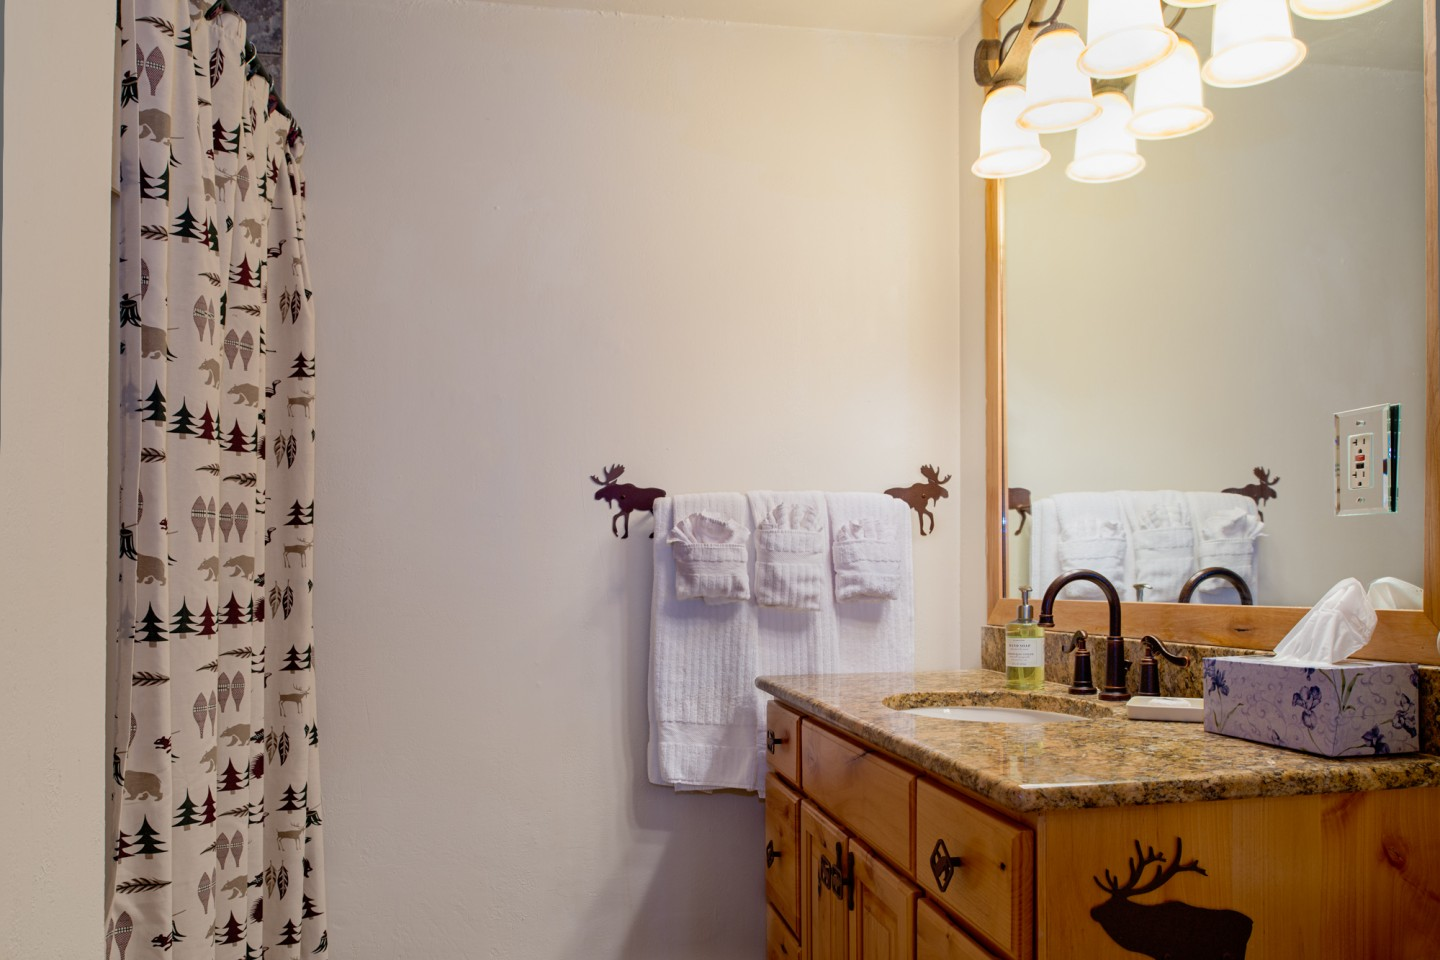 Downstairs bathroom — hit the shower straight from the hot tub